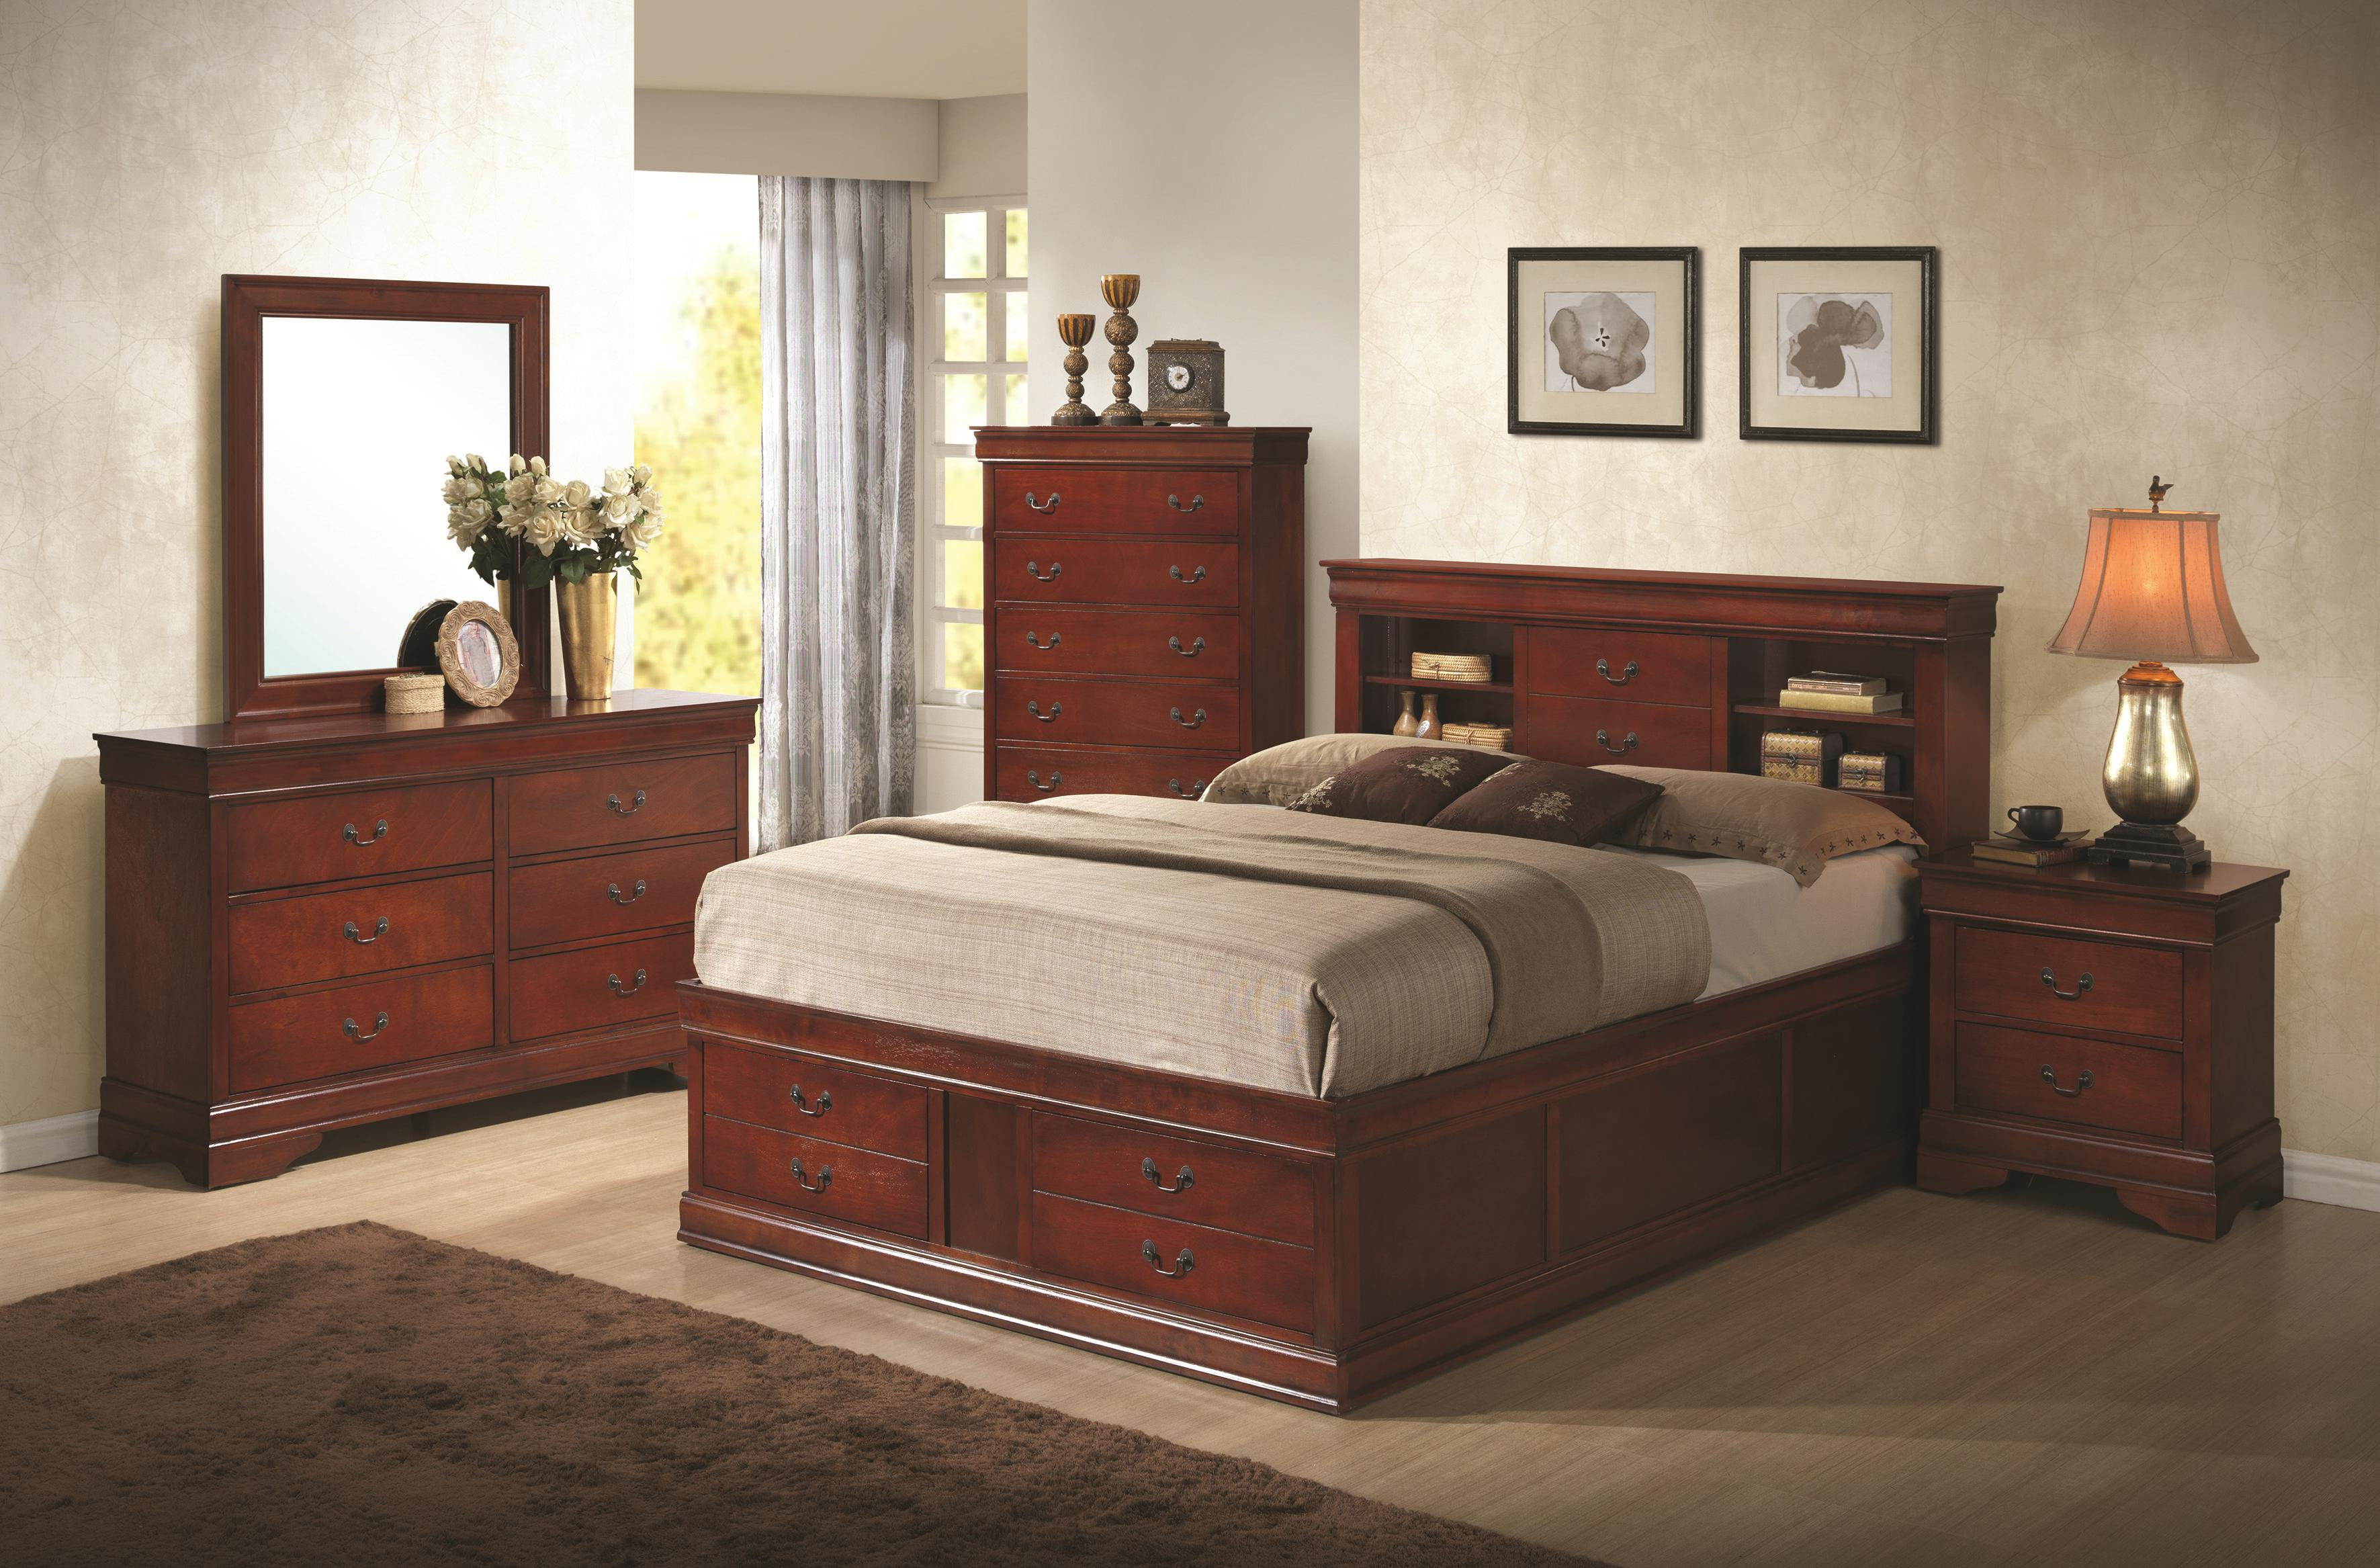 Coaster Louis Philippe Queen Bedroom Group - Item Number: 203960C Q Bedroom Group 1